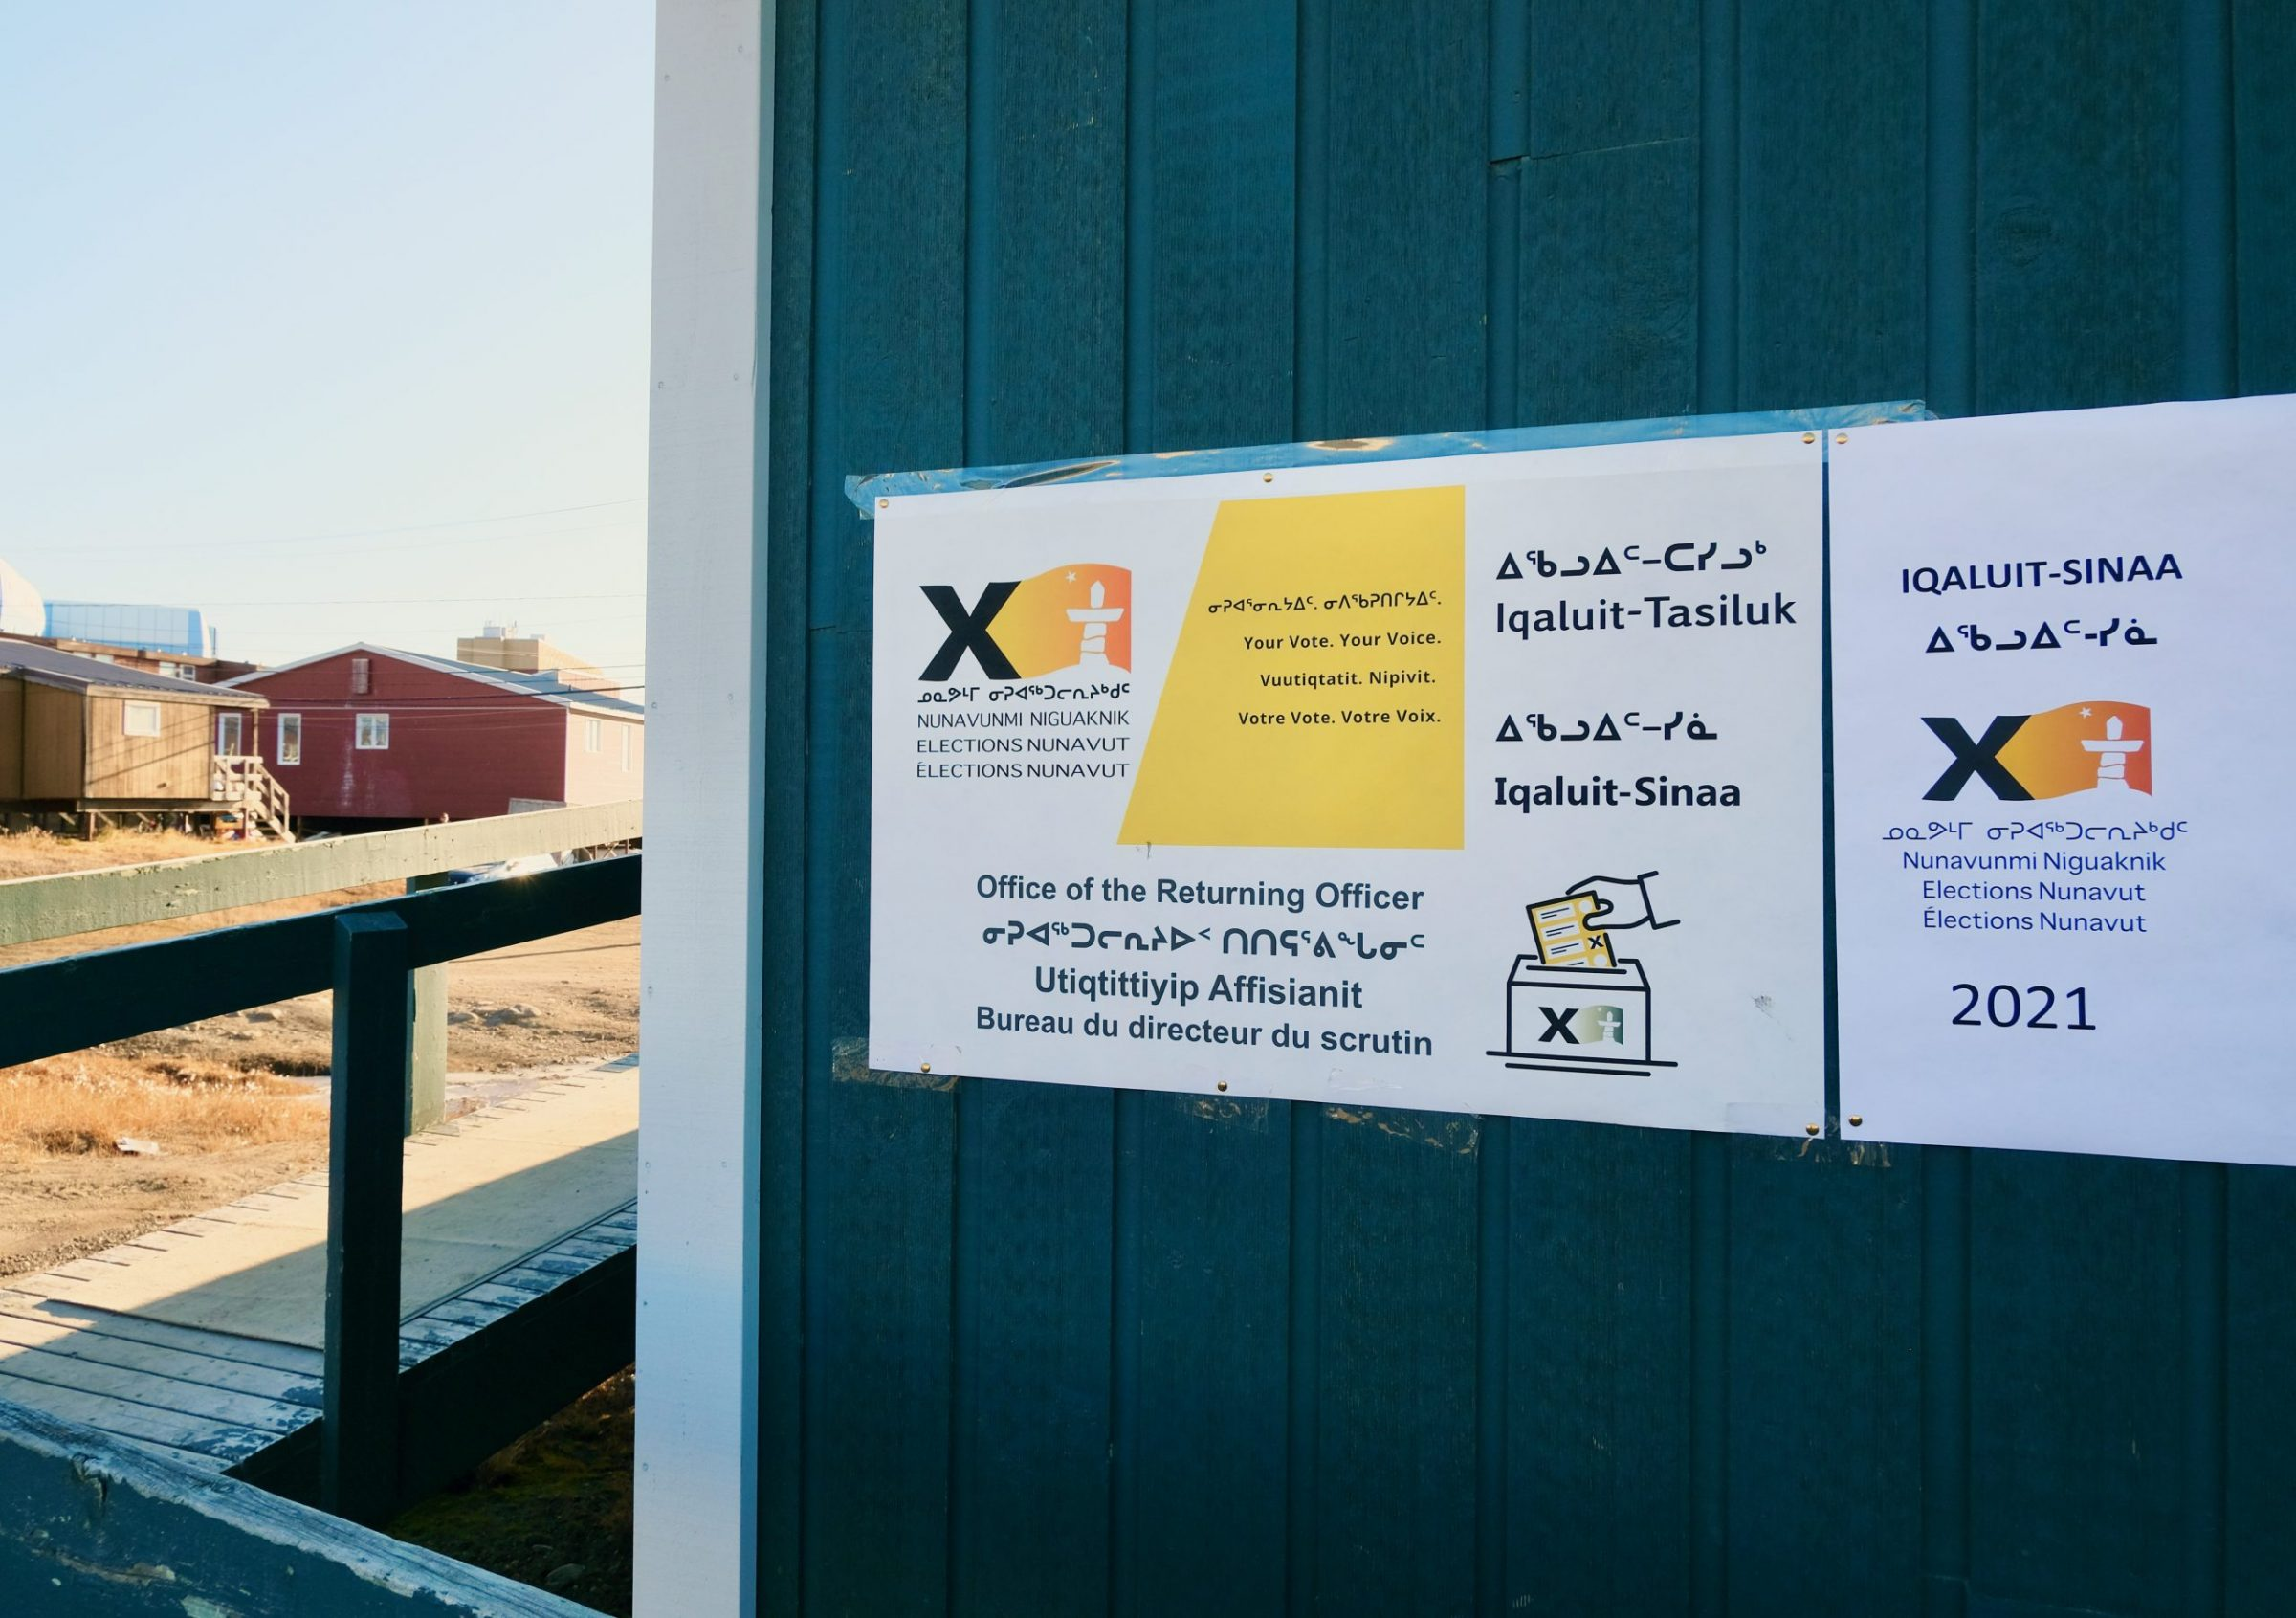 Advanced polling stations are open across Nunavut until Oct. 21. Nunavummiut can vote at their local ridings' returning officer's offices until then. Advanced poll numbers will be posted next week, before the general election takes place on Oct. 21. (Photo by Mélanie Ritchot)